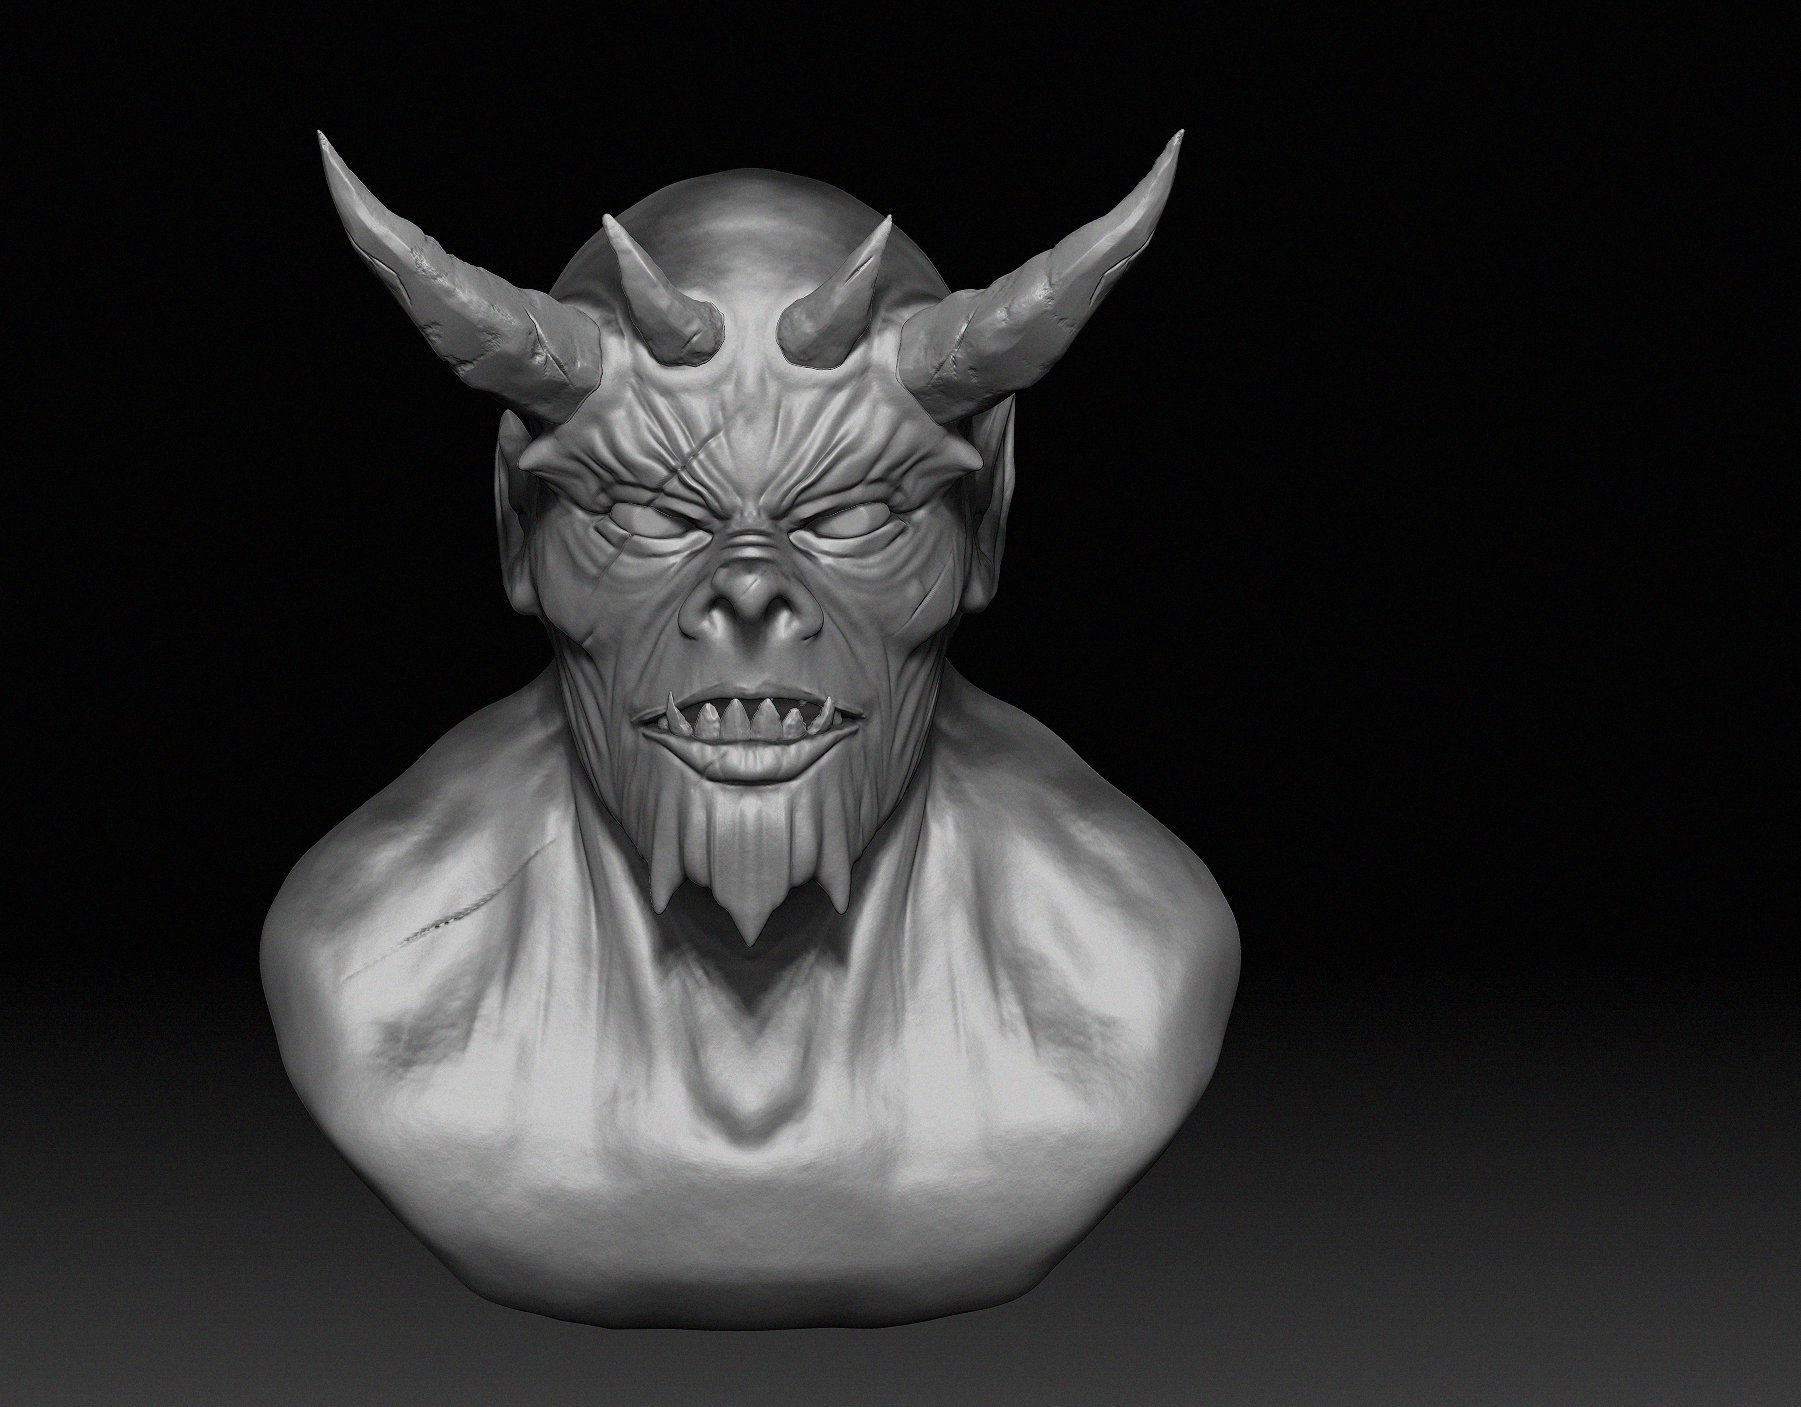 demon_head_by_captainapoc-d9apwio.jpg